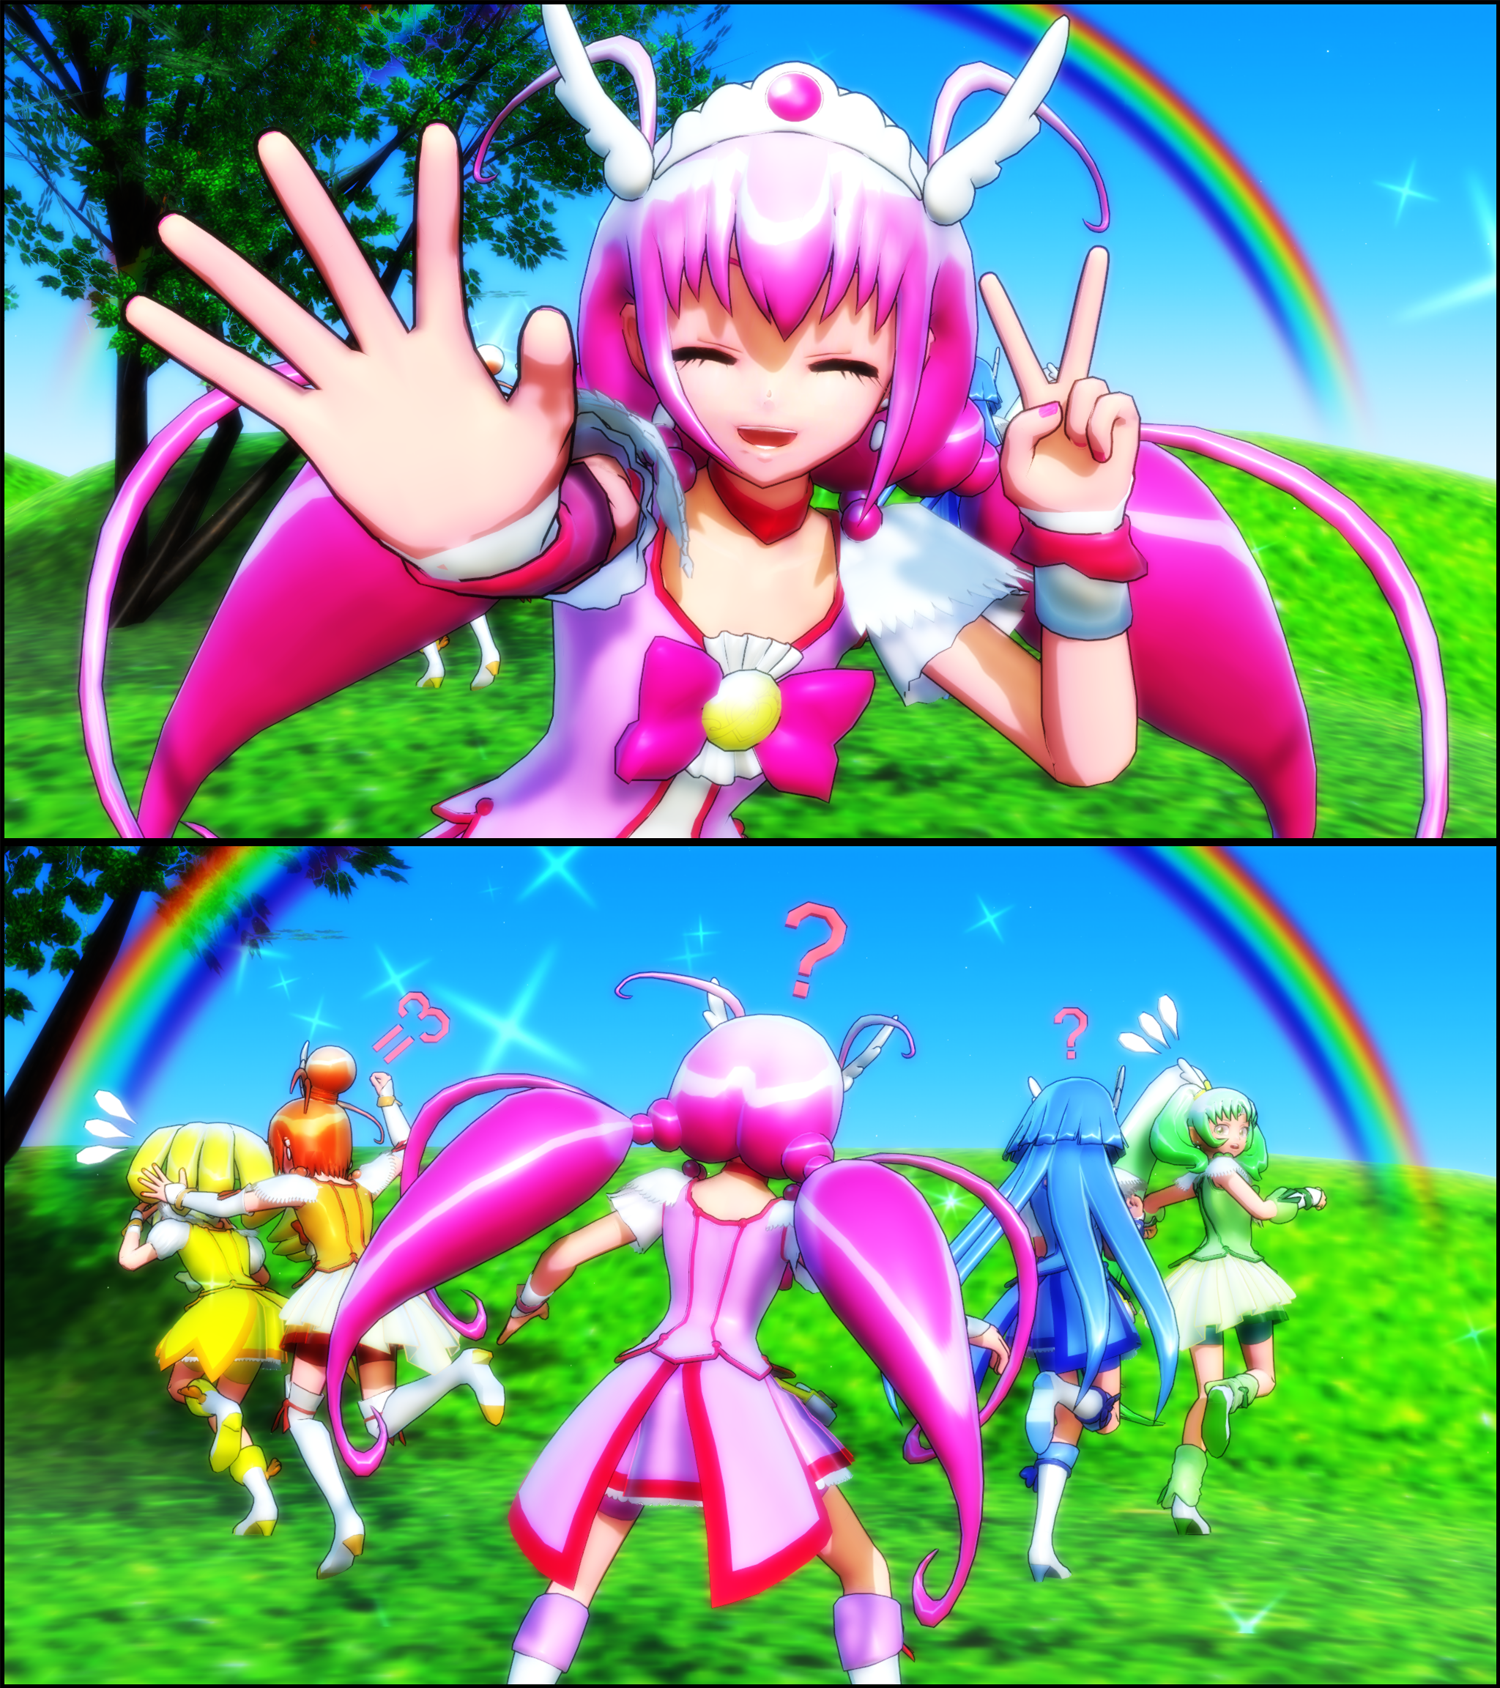 Smile Precure Characters Mmd Smile Precure By Luckyseven Didx